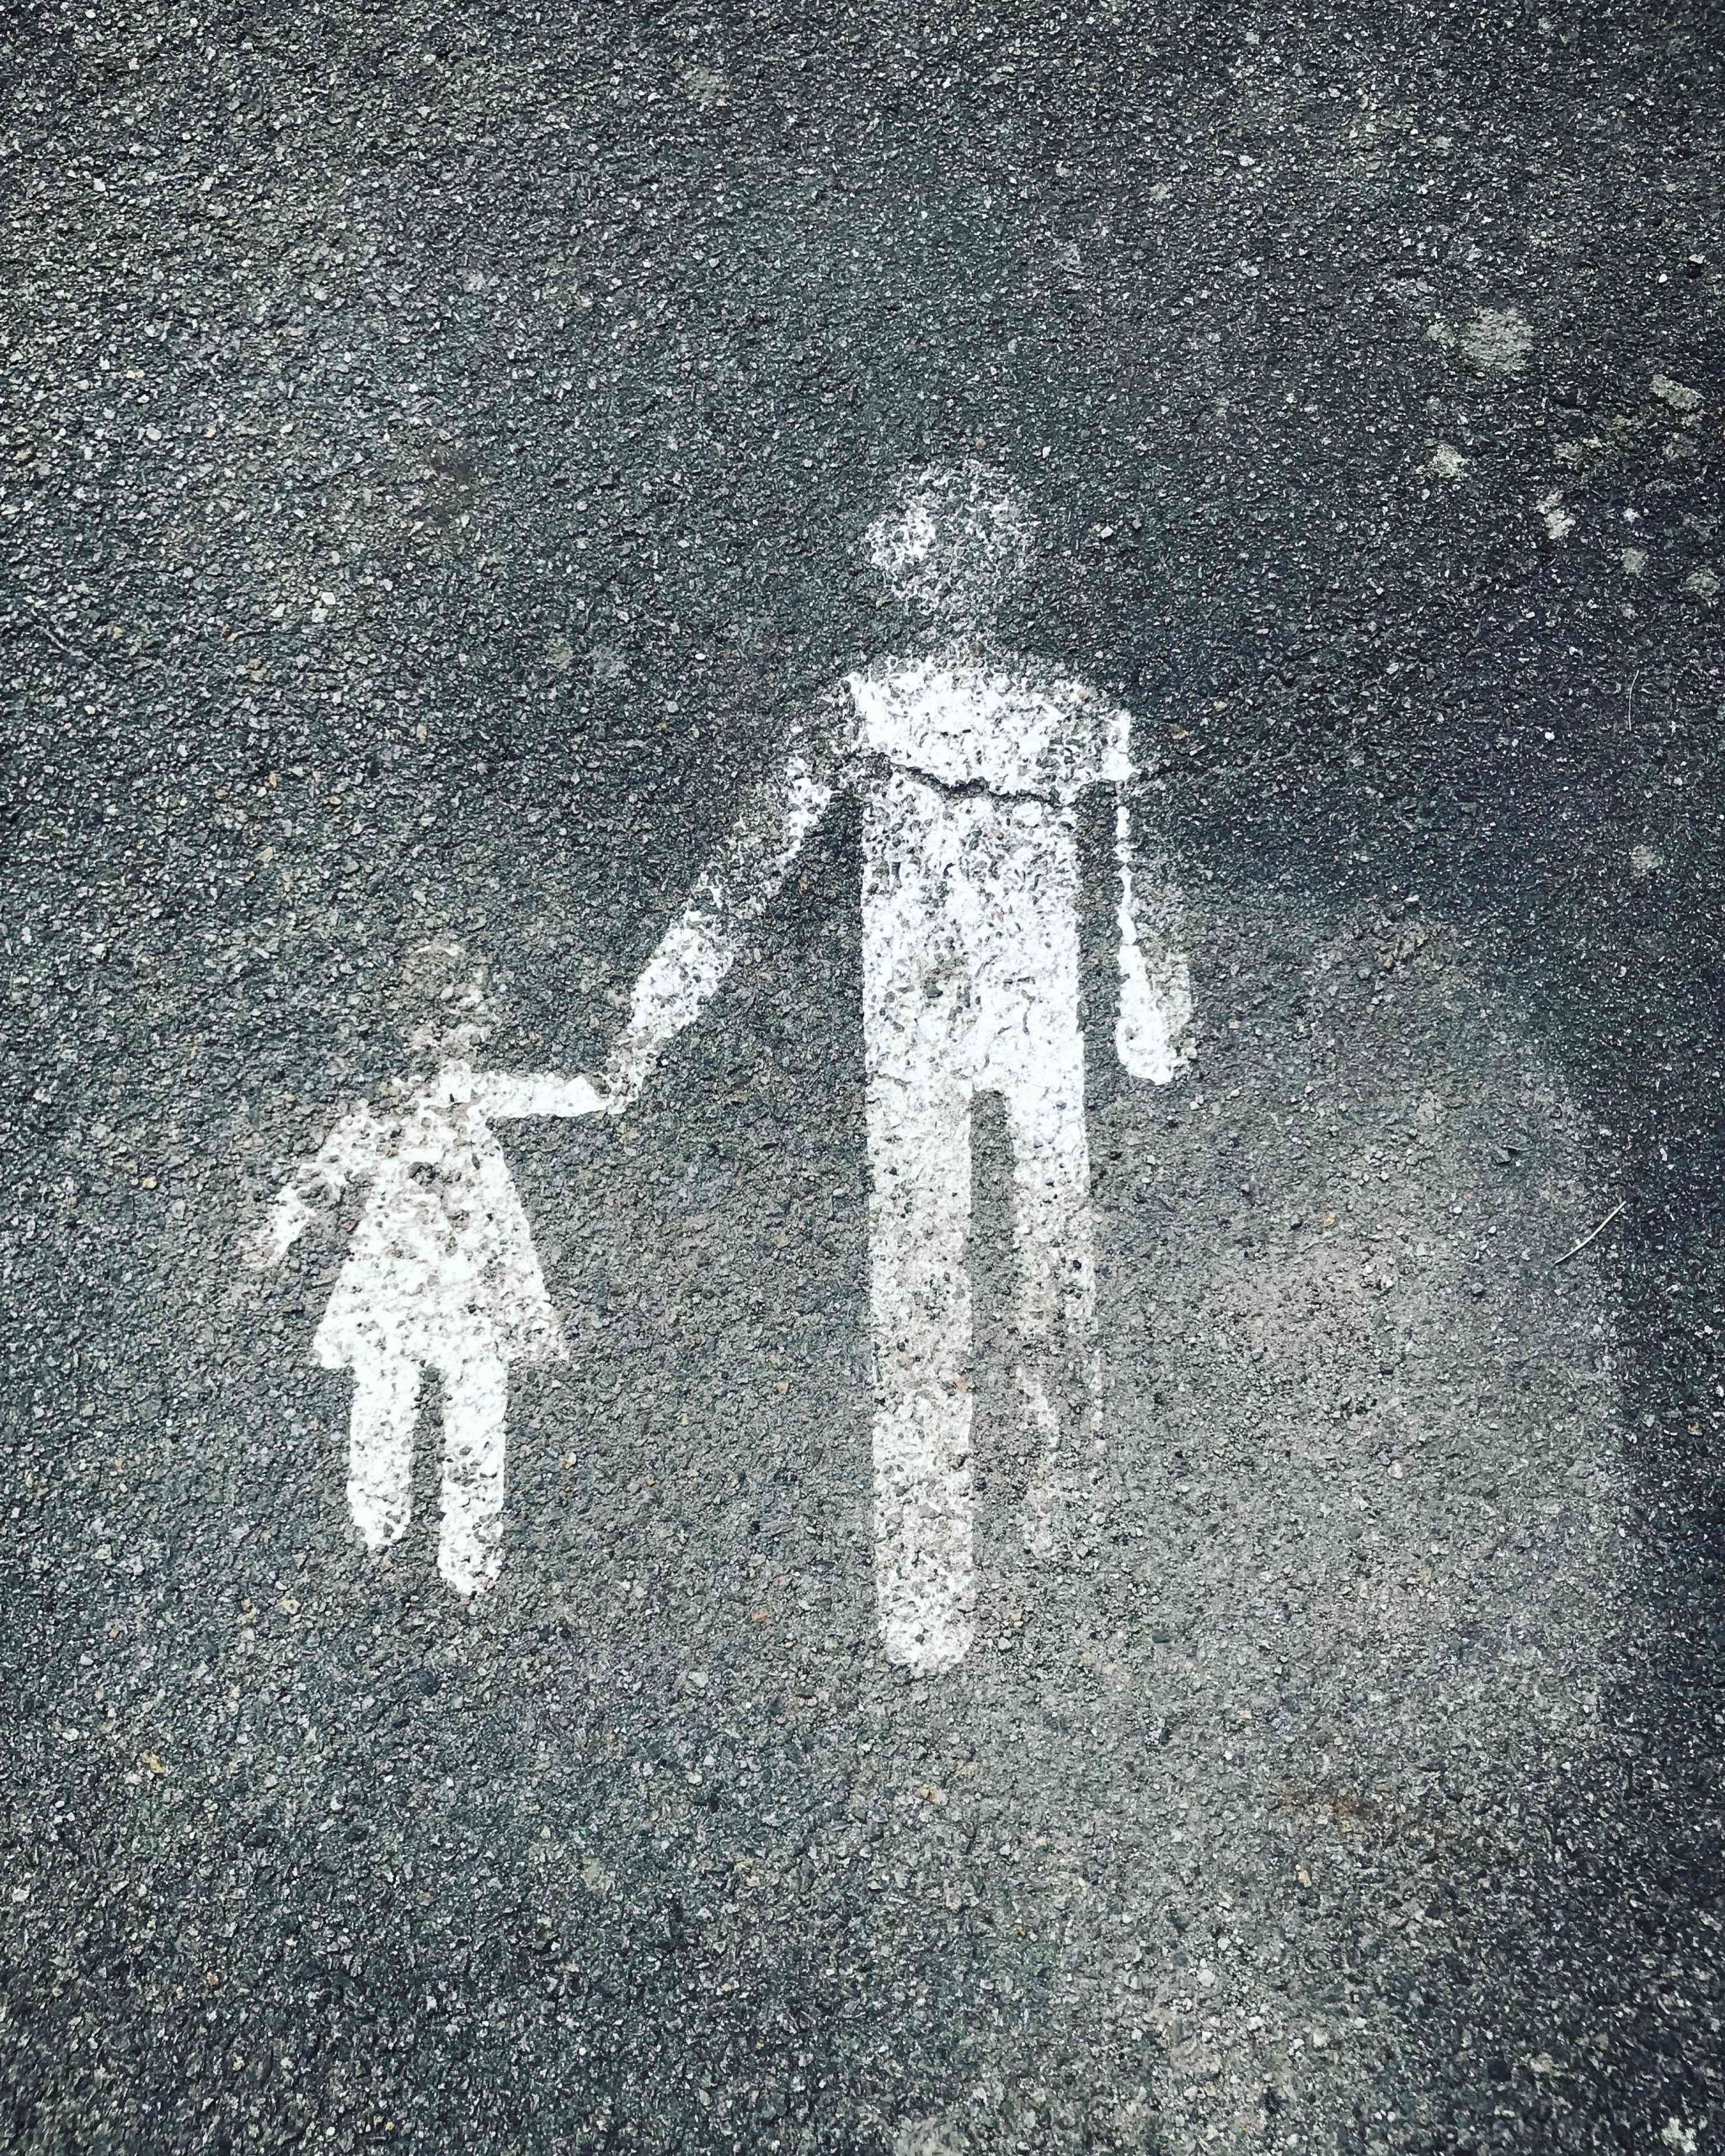 Photograph of a floor surface painted with a white graphic of a small person in a dress holding hands with a taller person in trousers